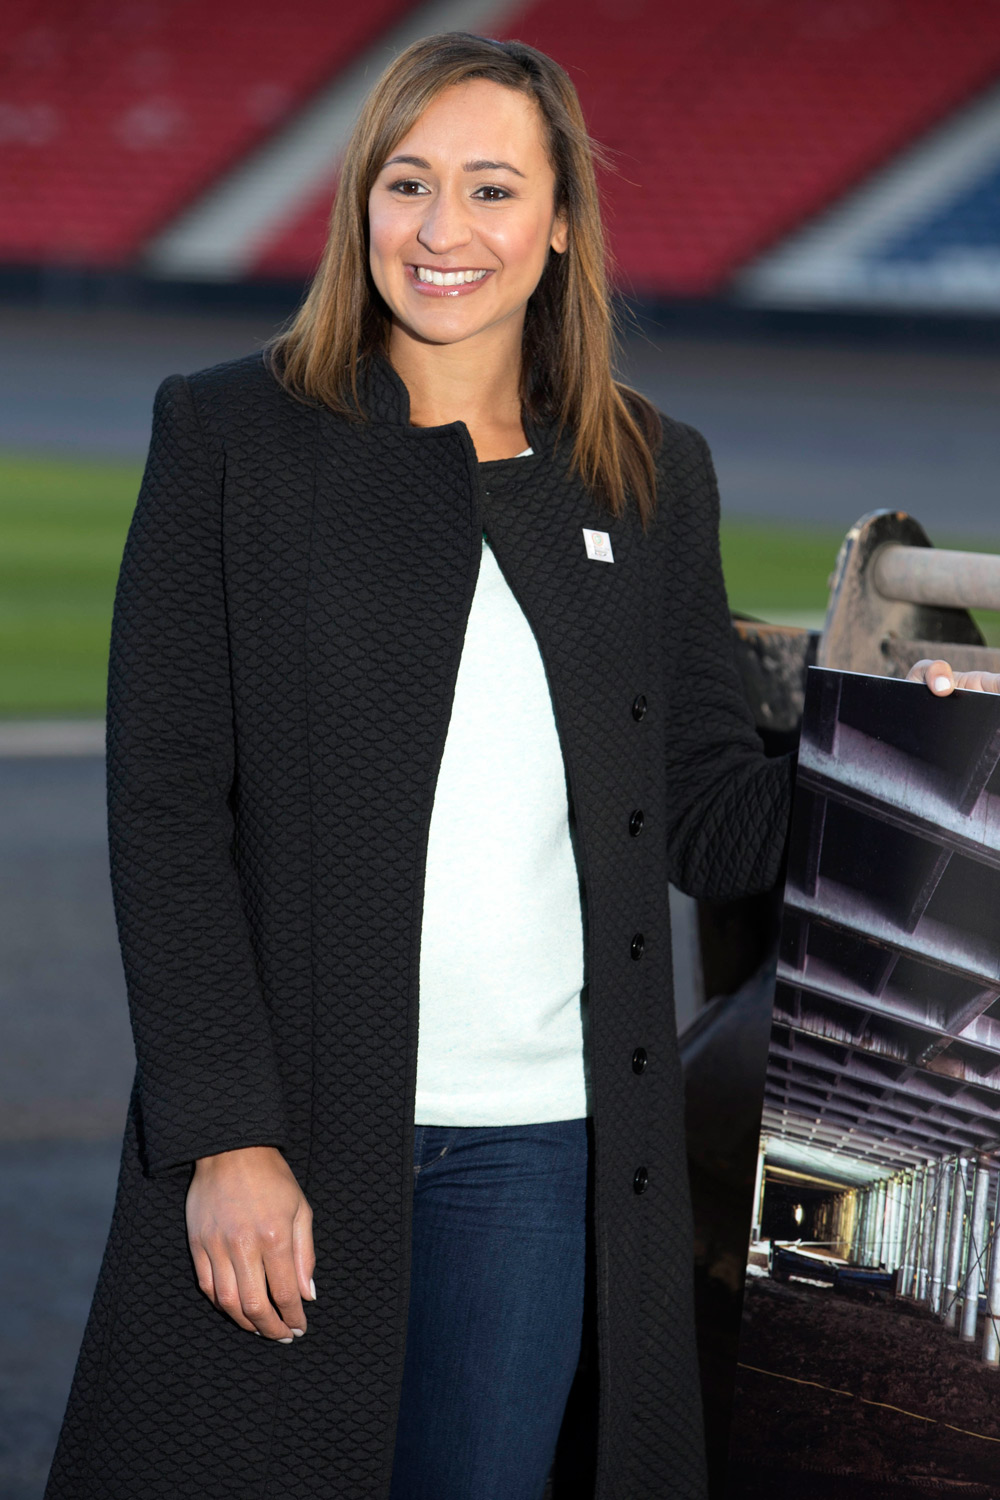 Jessica Ennis Has Given Birth To A Baby Boy